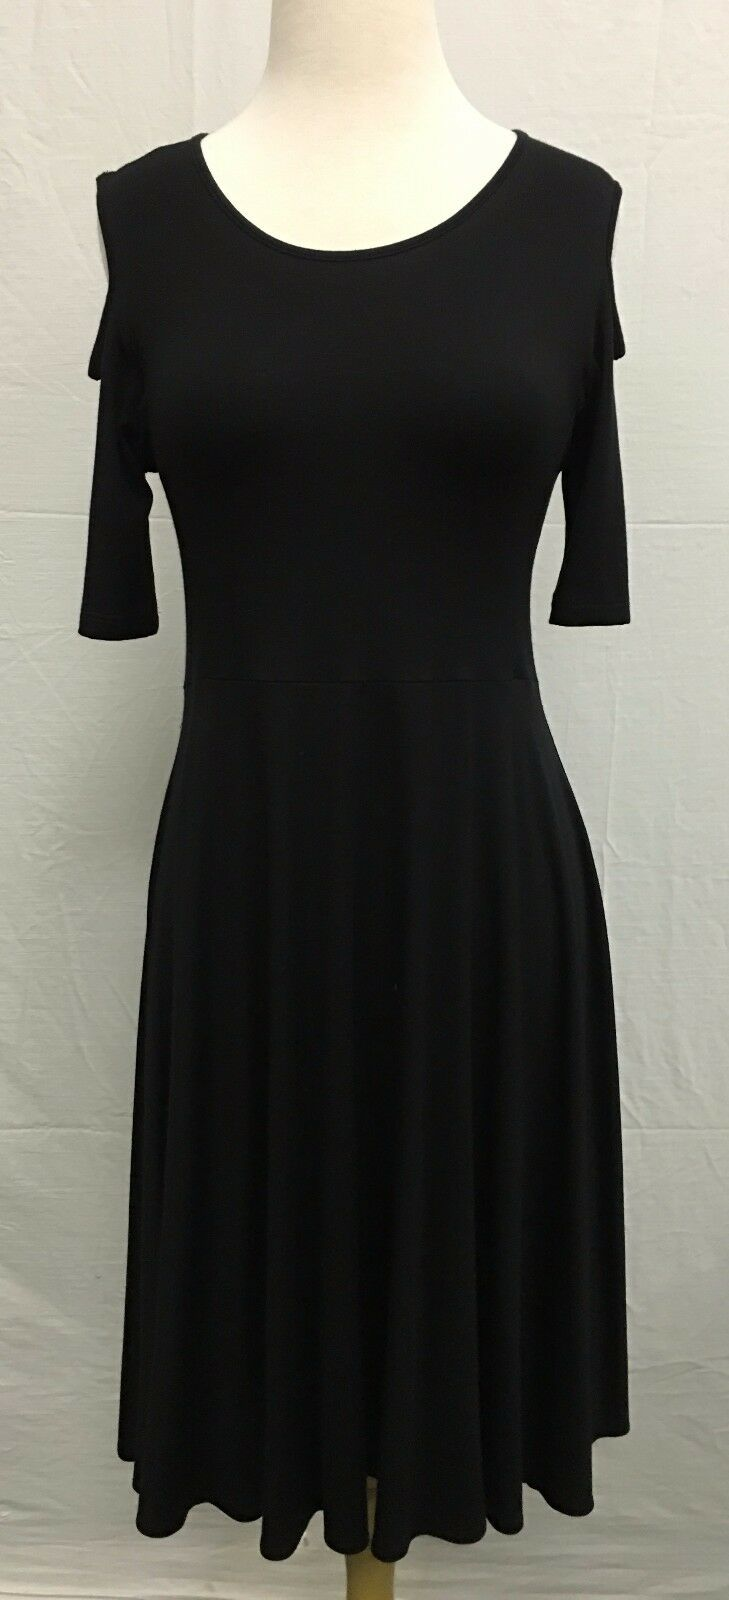 Comfy USA Woherren Nicole Long Dress Modal Cold Shoulder Style M410 NEW w Tags